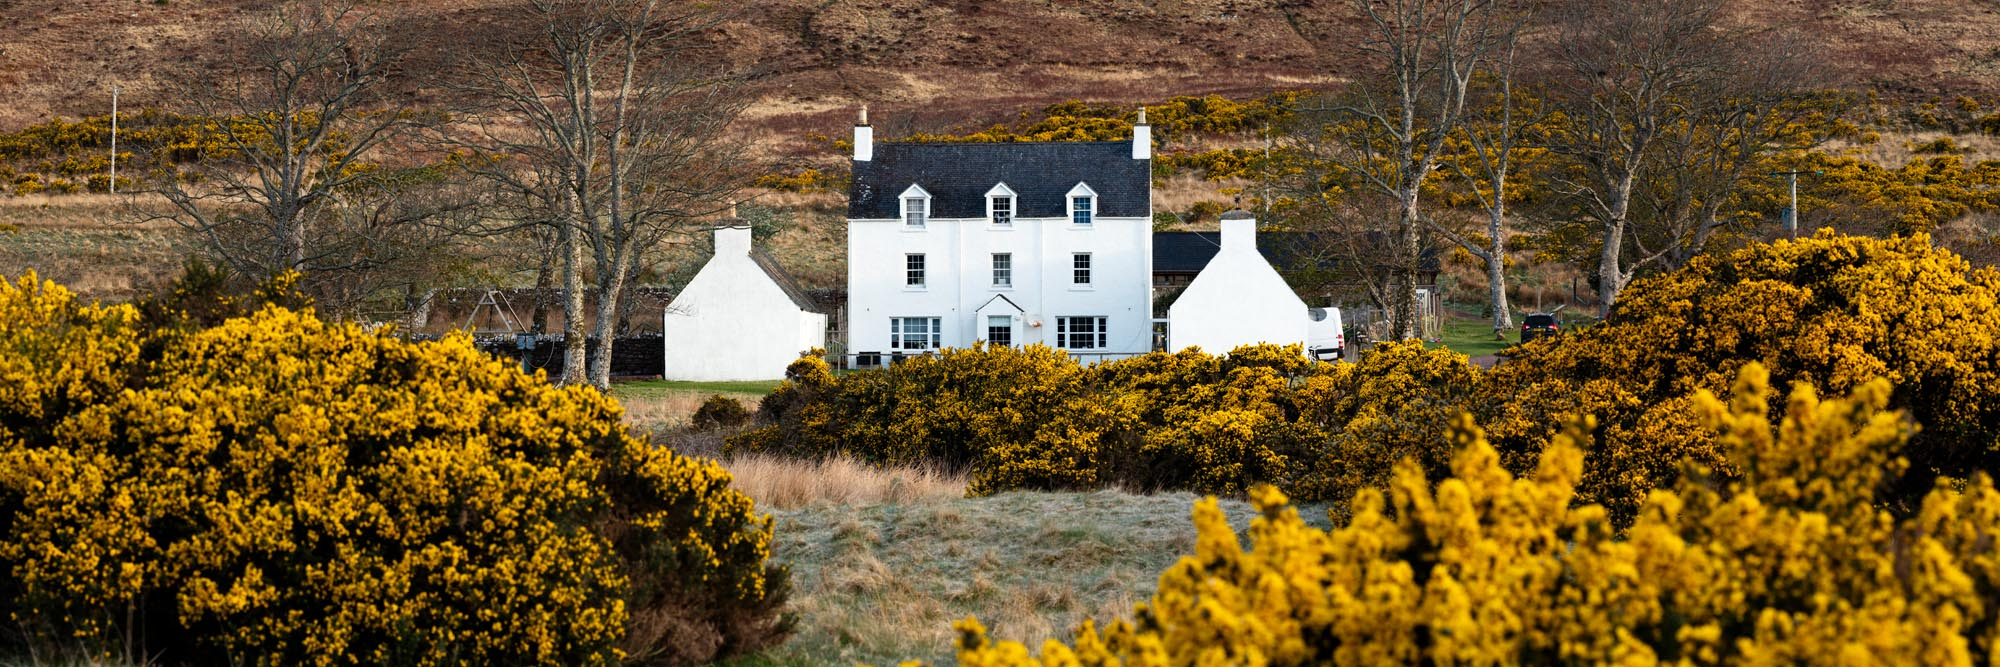 Scottish White House and gorse in spring in Applecross